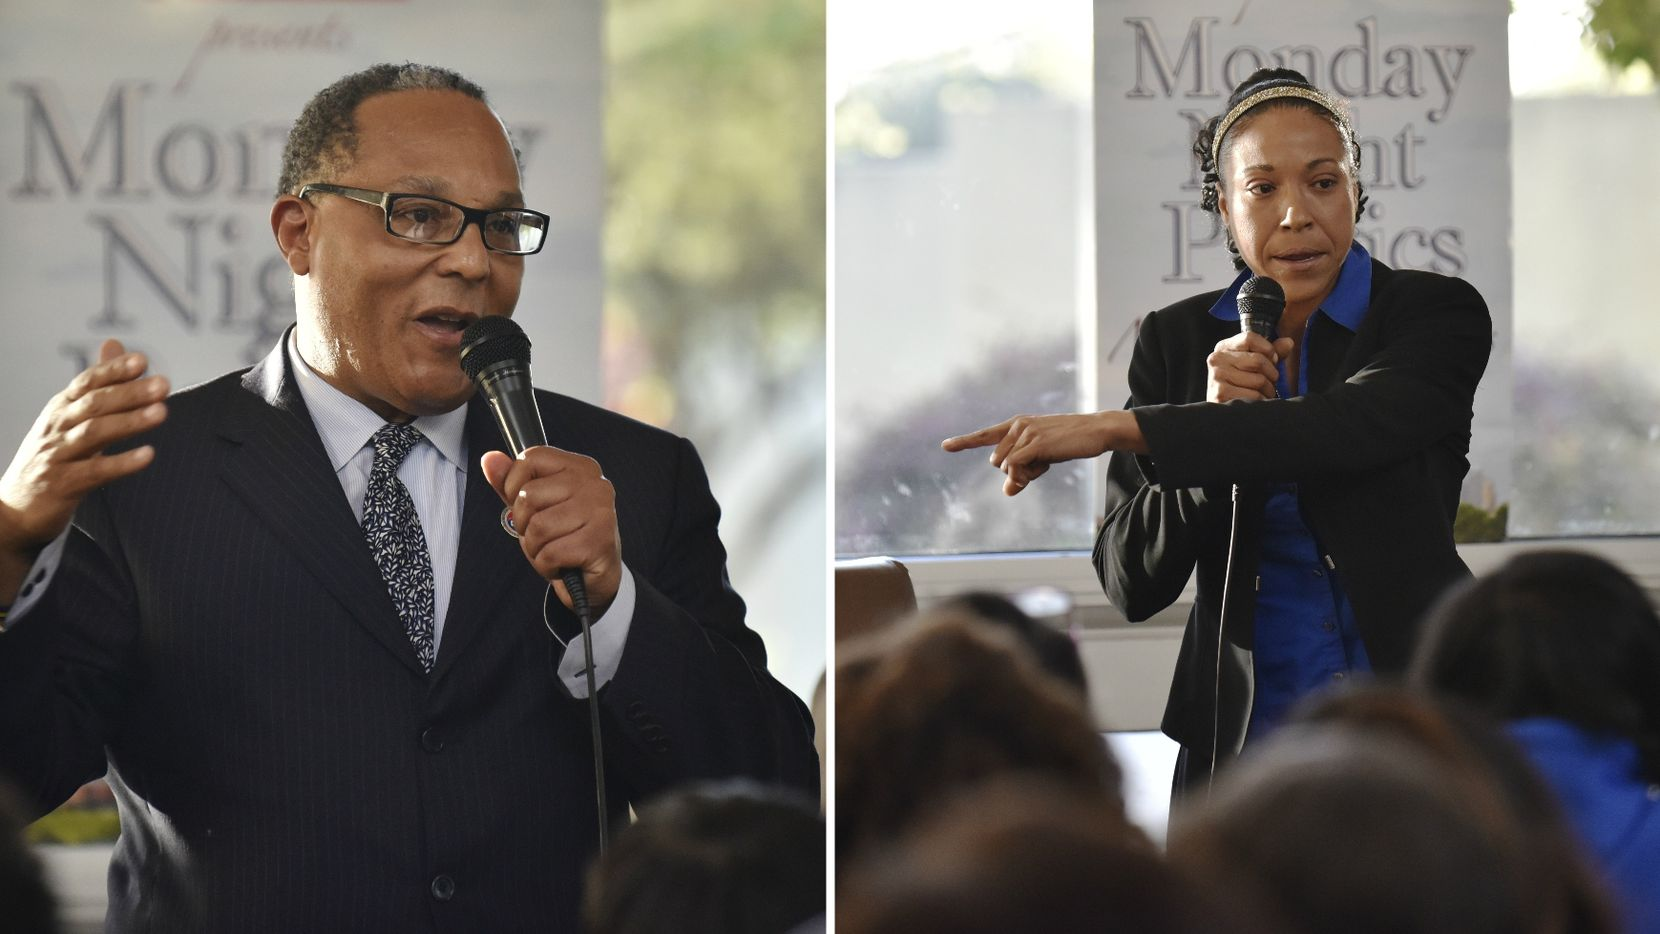 Dallas police are investigating an incident between Dallas City Council member Kevin Felder and candidate Yvette Gbalazeh that began as a dispute over campaign signs.